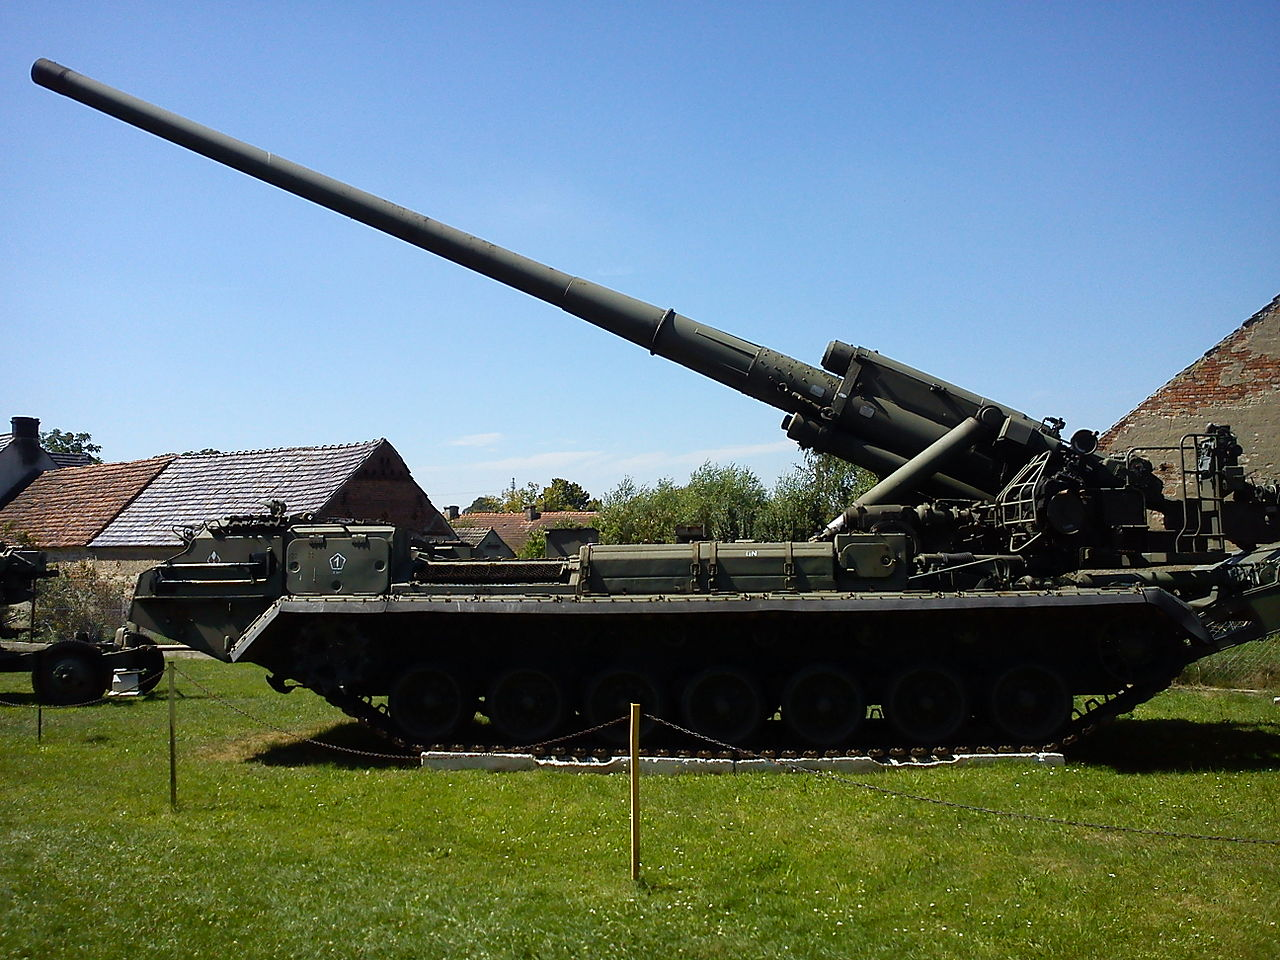 http://upload.wikimedia.org/wikipedia/commons/thumb/1/13/2S7_Pion_SPG_at_Lubuskie_Military_Museum,_Drzon%C3%B3w,_Poland.jpg/1280px-2S7_Pion_SPG_at_Lubuskie_Military_Museum,_Drzon%C3%B3w,_Poland.jpg